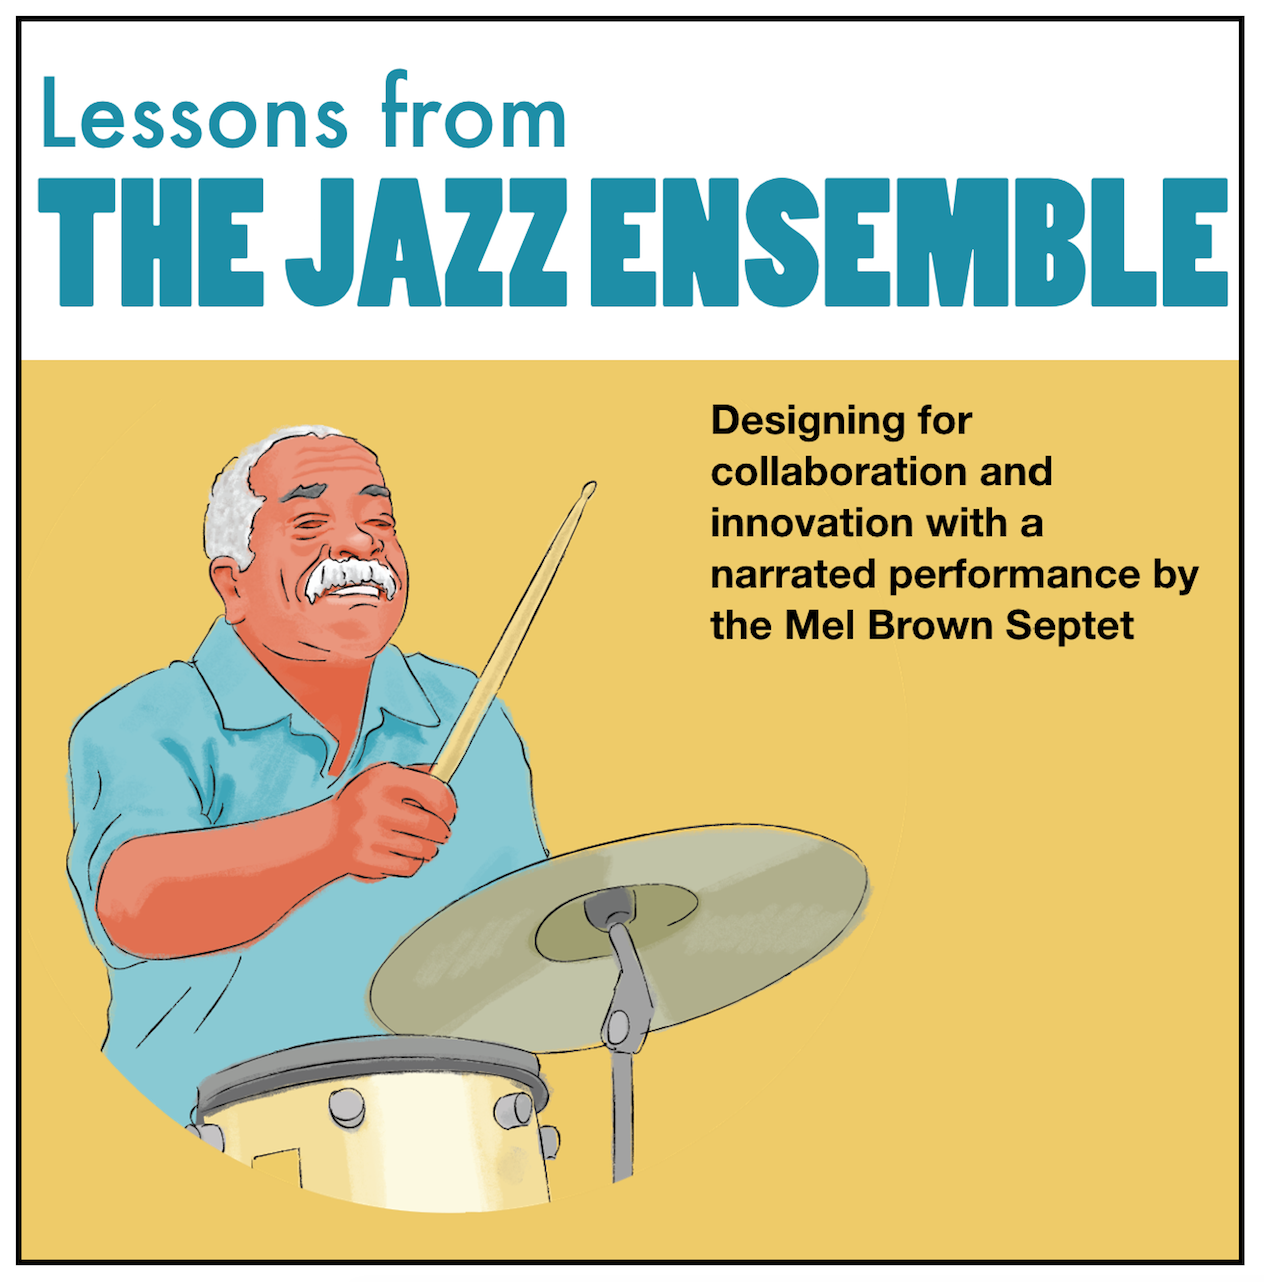 Image for Event Promotion: Lessons from the Jazz Ensemble, The PEAK Fleet, April 2018